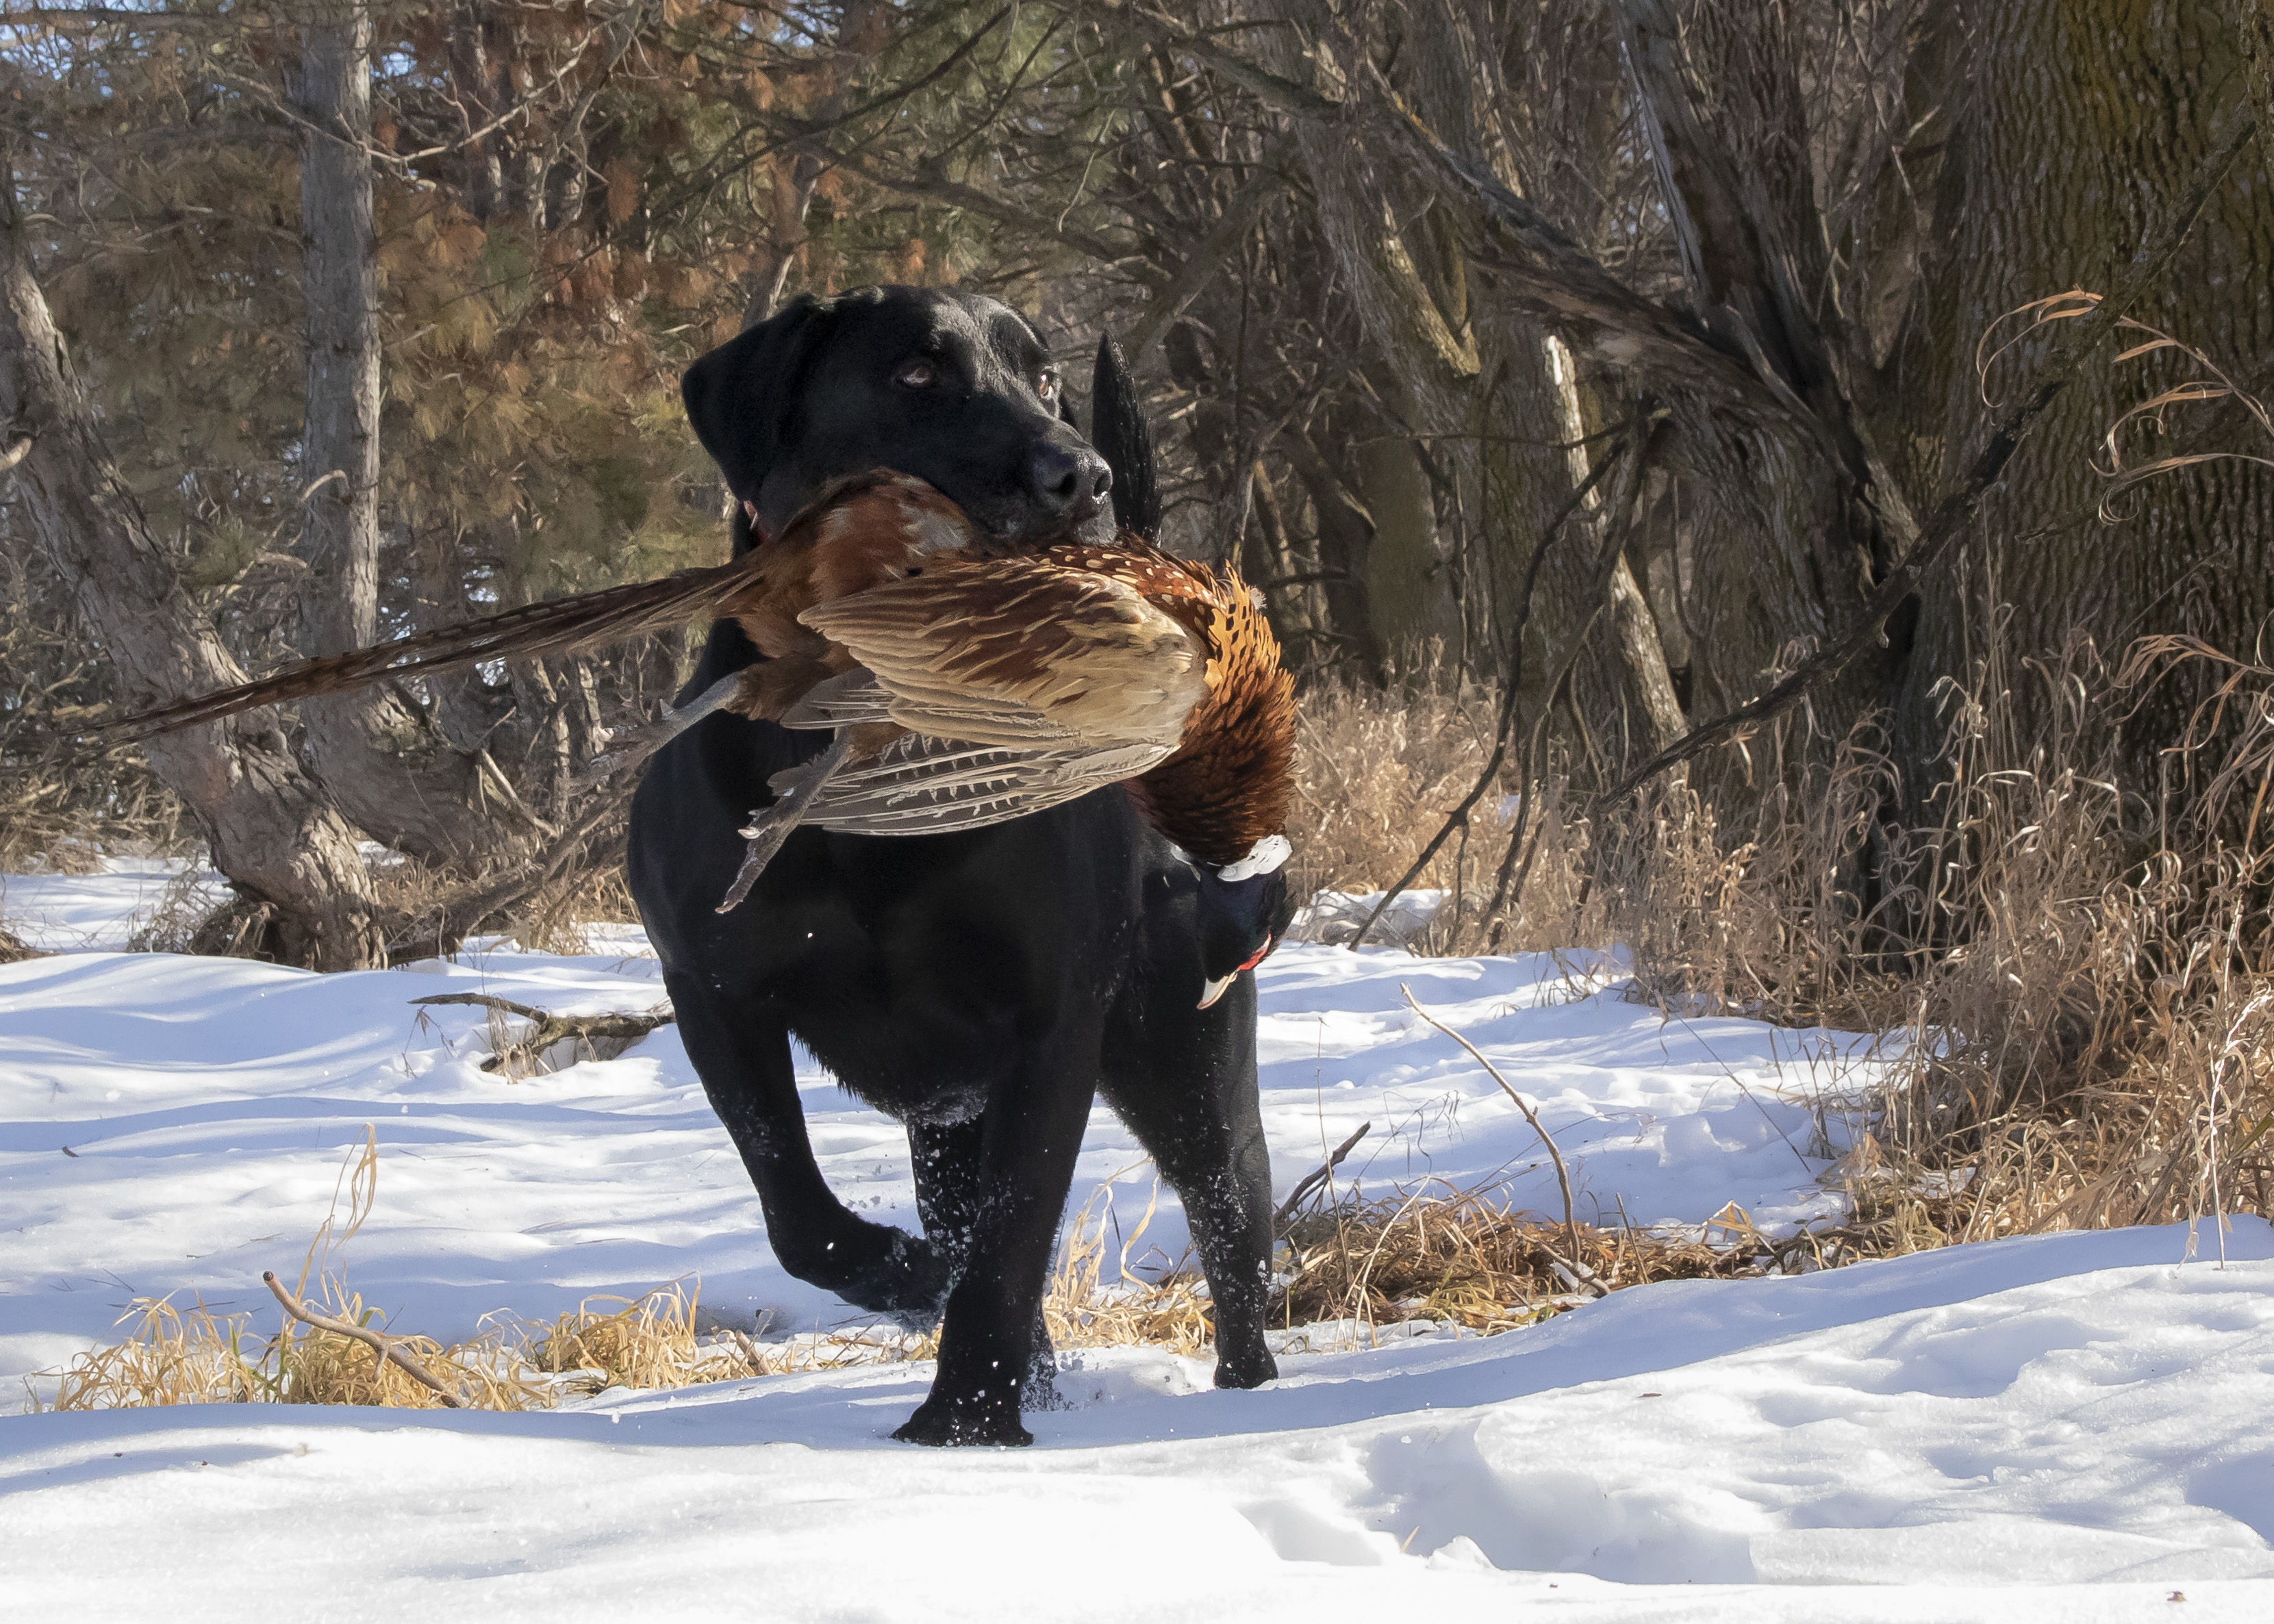 Ace retrieves a pheasant